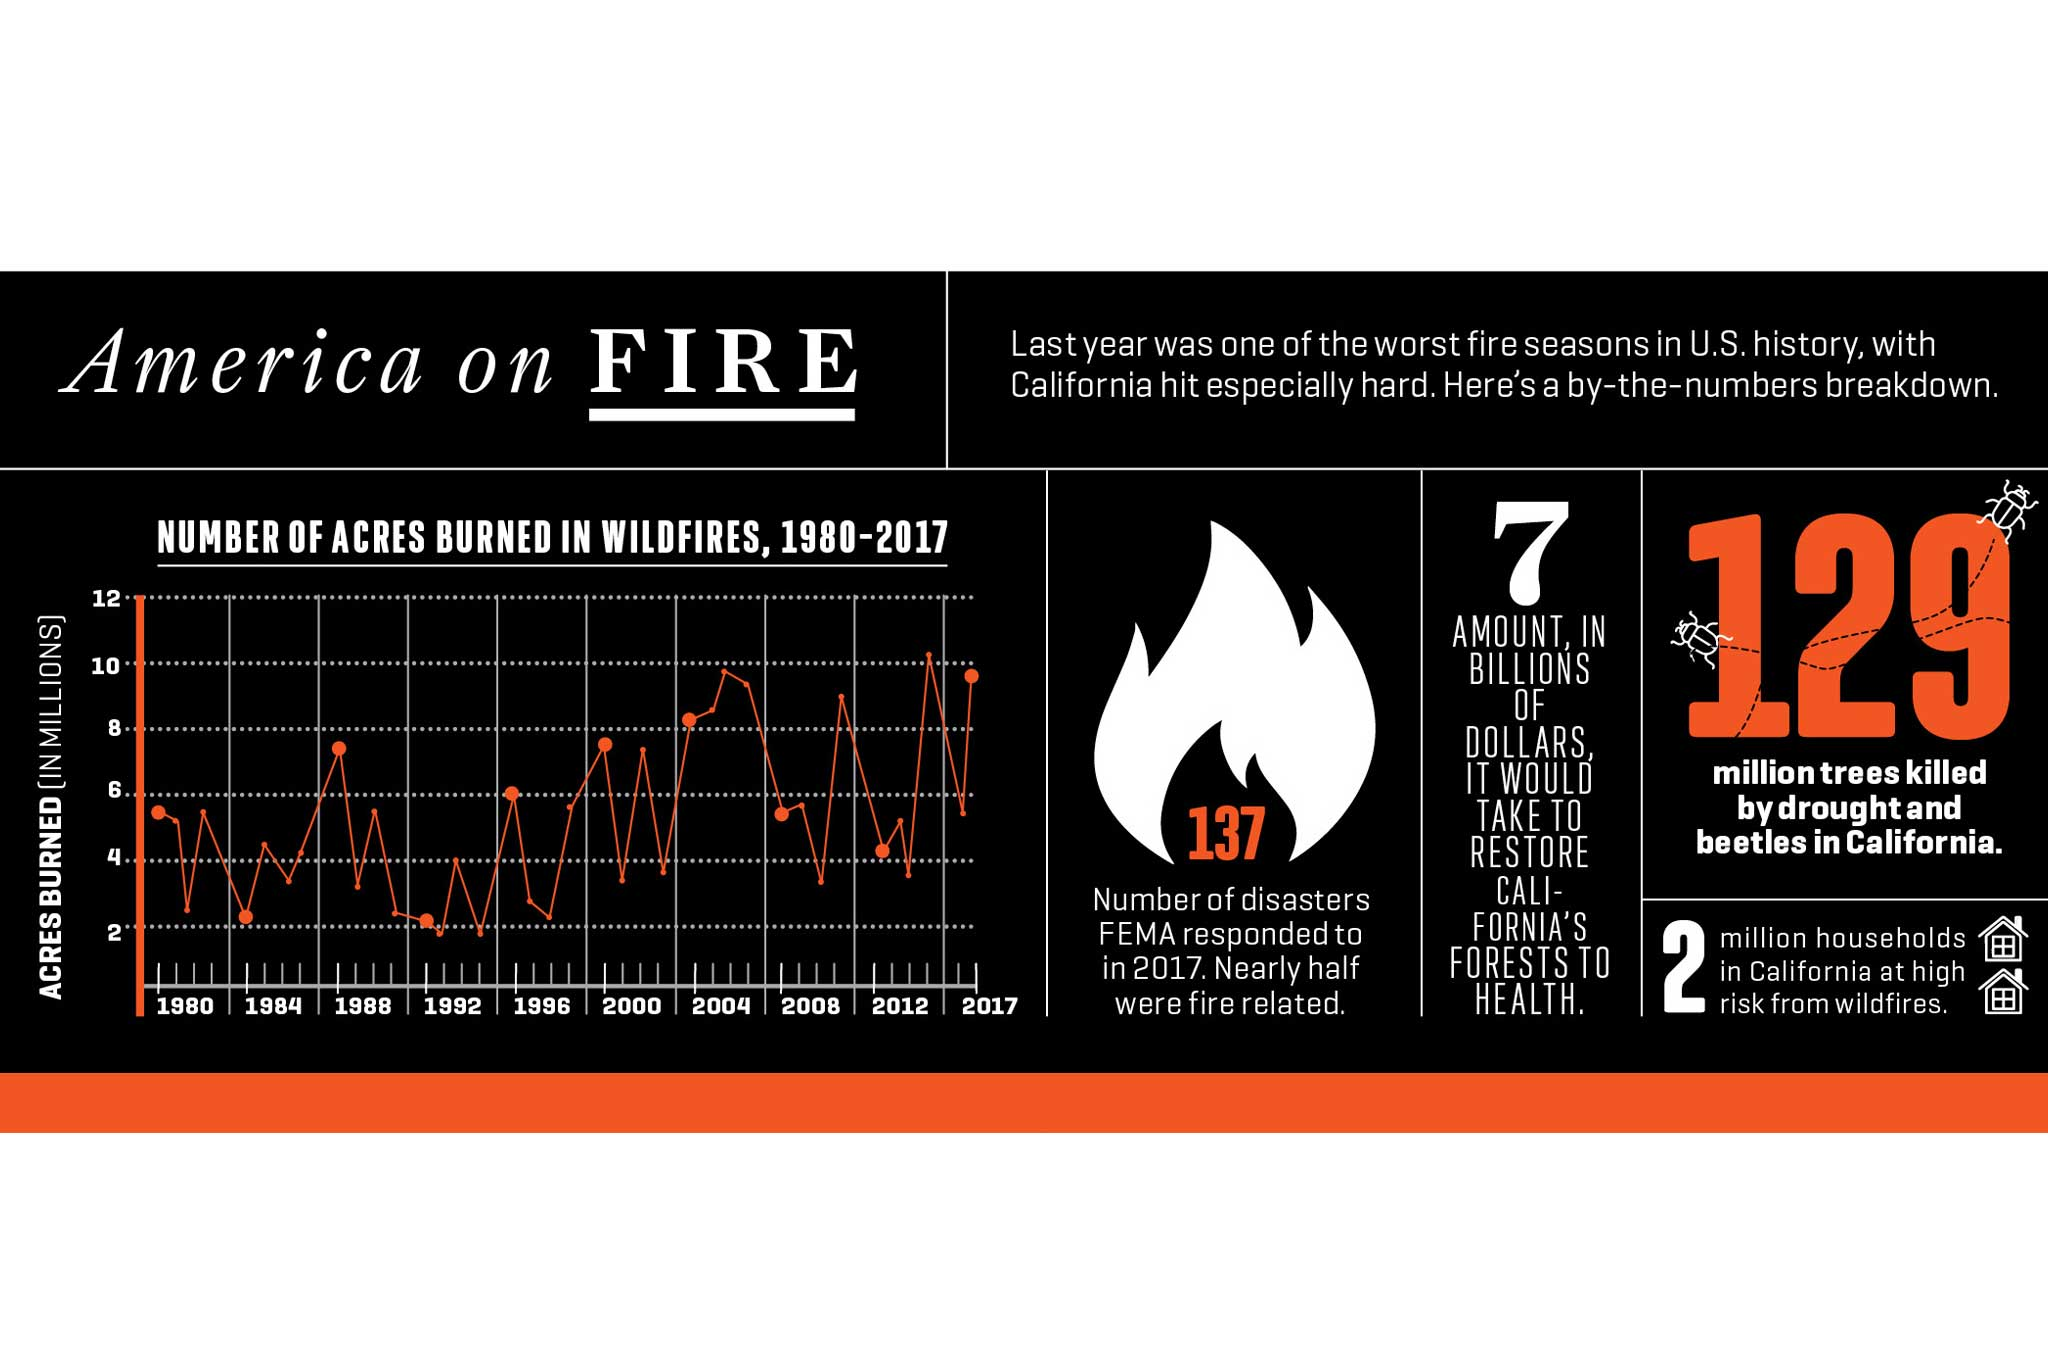 Stats on wildfires across America